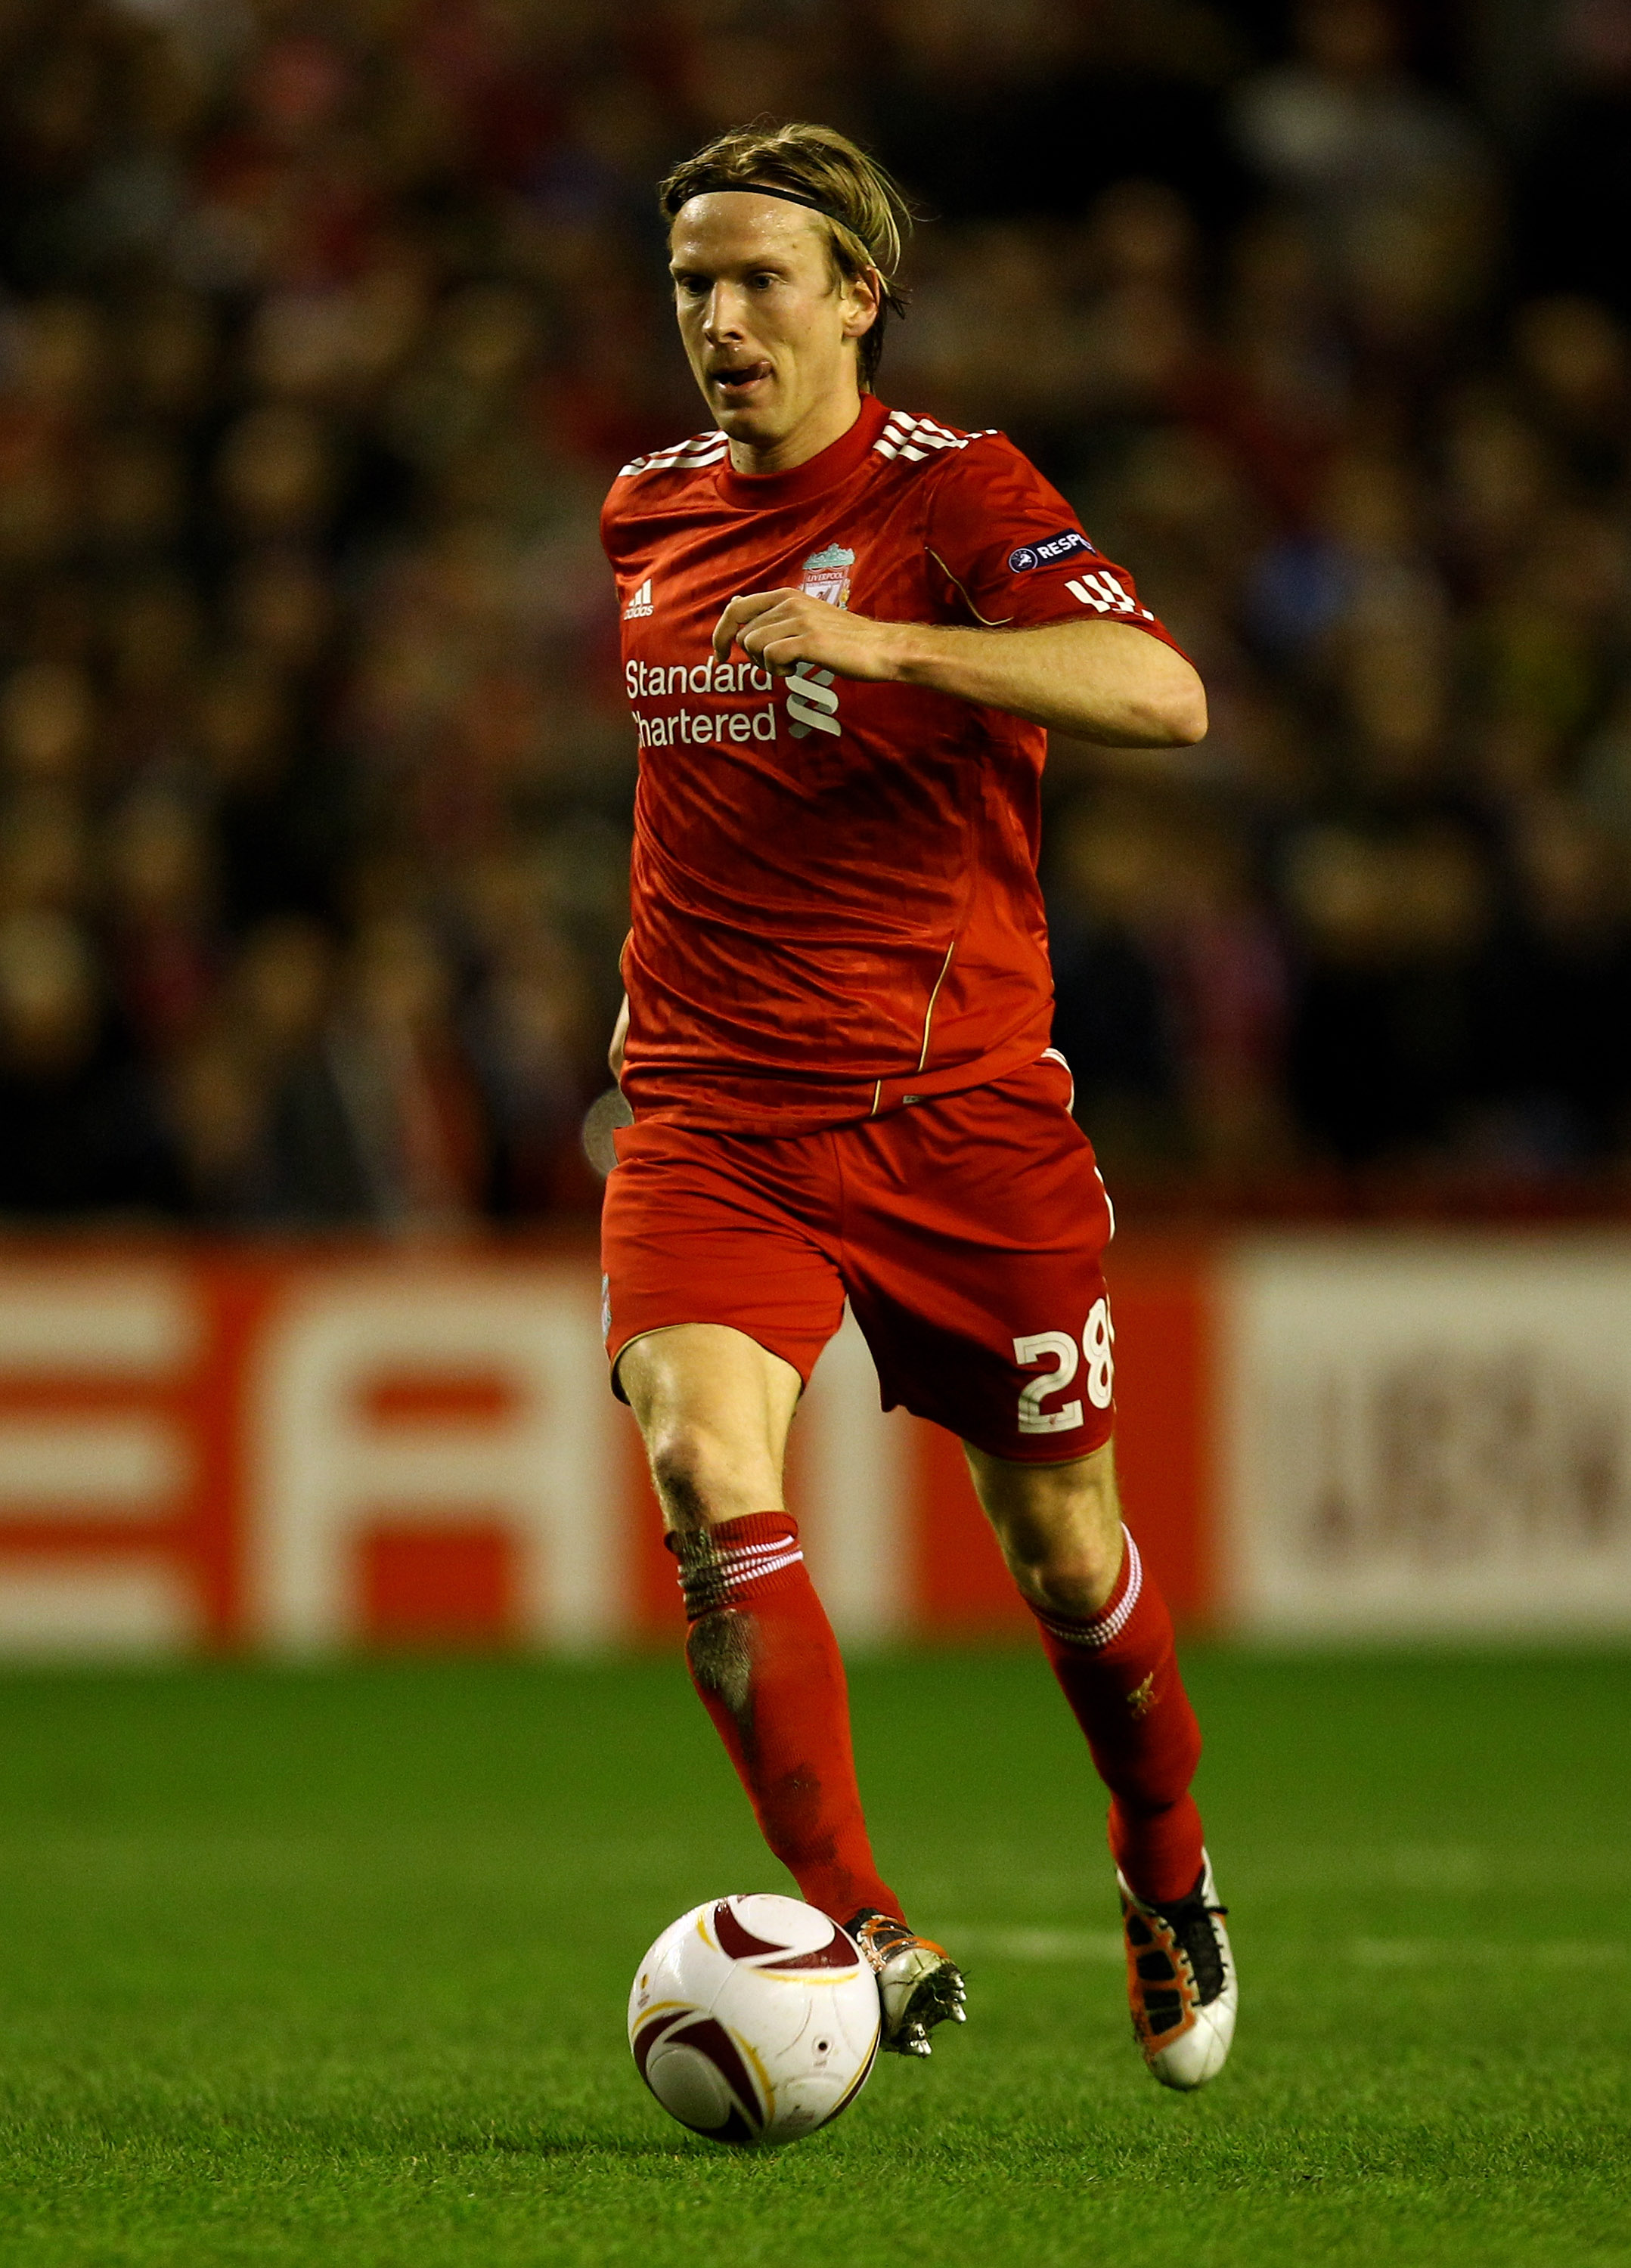 LIVERPOOL, ENGLAND - FEBRUARY 24:  Christian Poulsen of Liverpool in action during the UEFA Europa League Round of 32 2nd leg match beteween Liverpool and Sparta Prague at Anfield on February 24, 2011 in Liverpool, England.  (Photo by Richard Heathcote/Ge